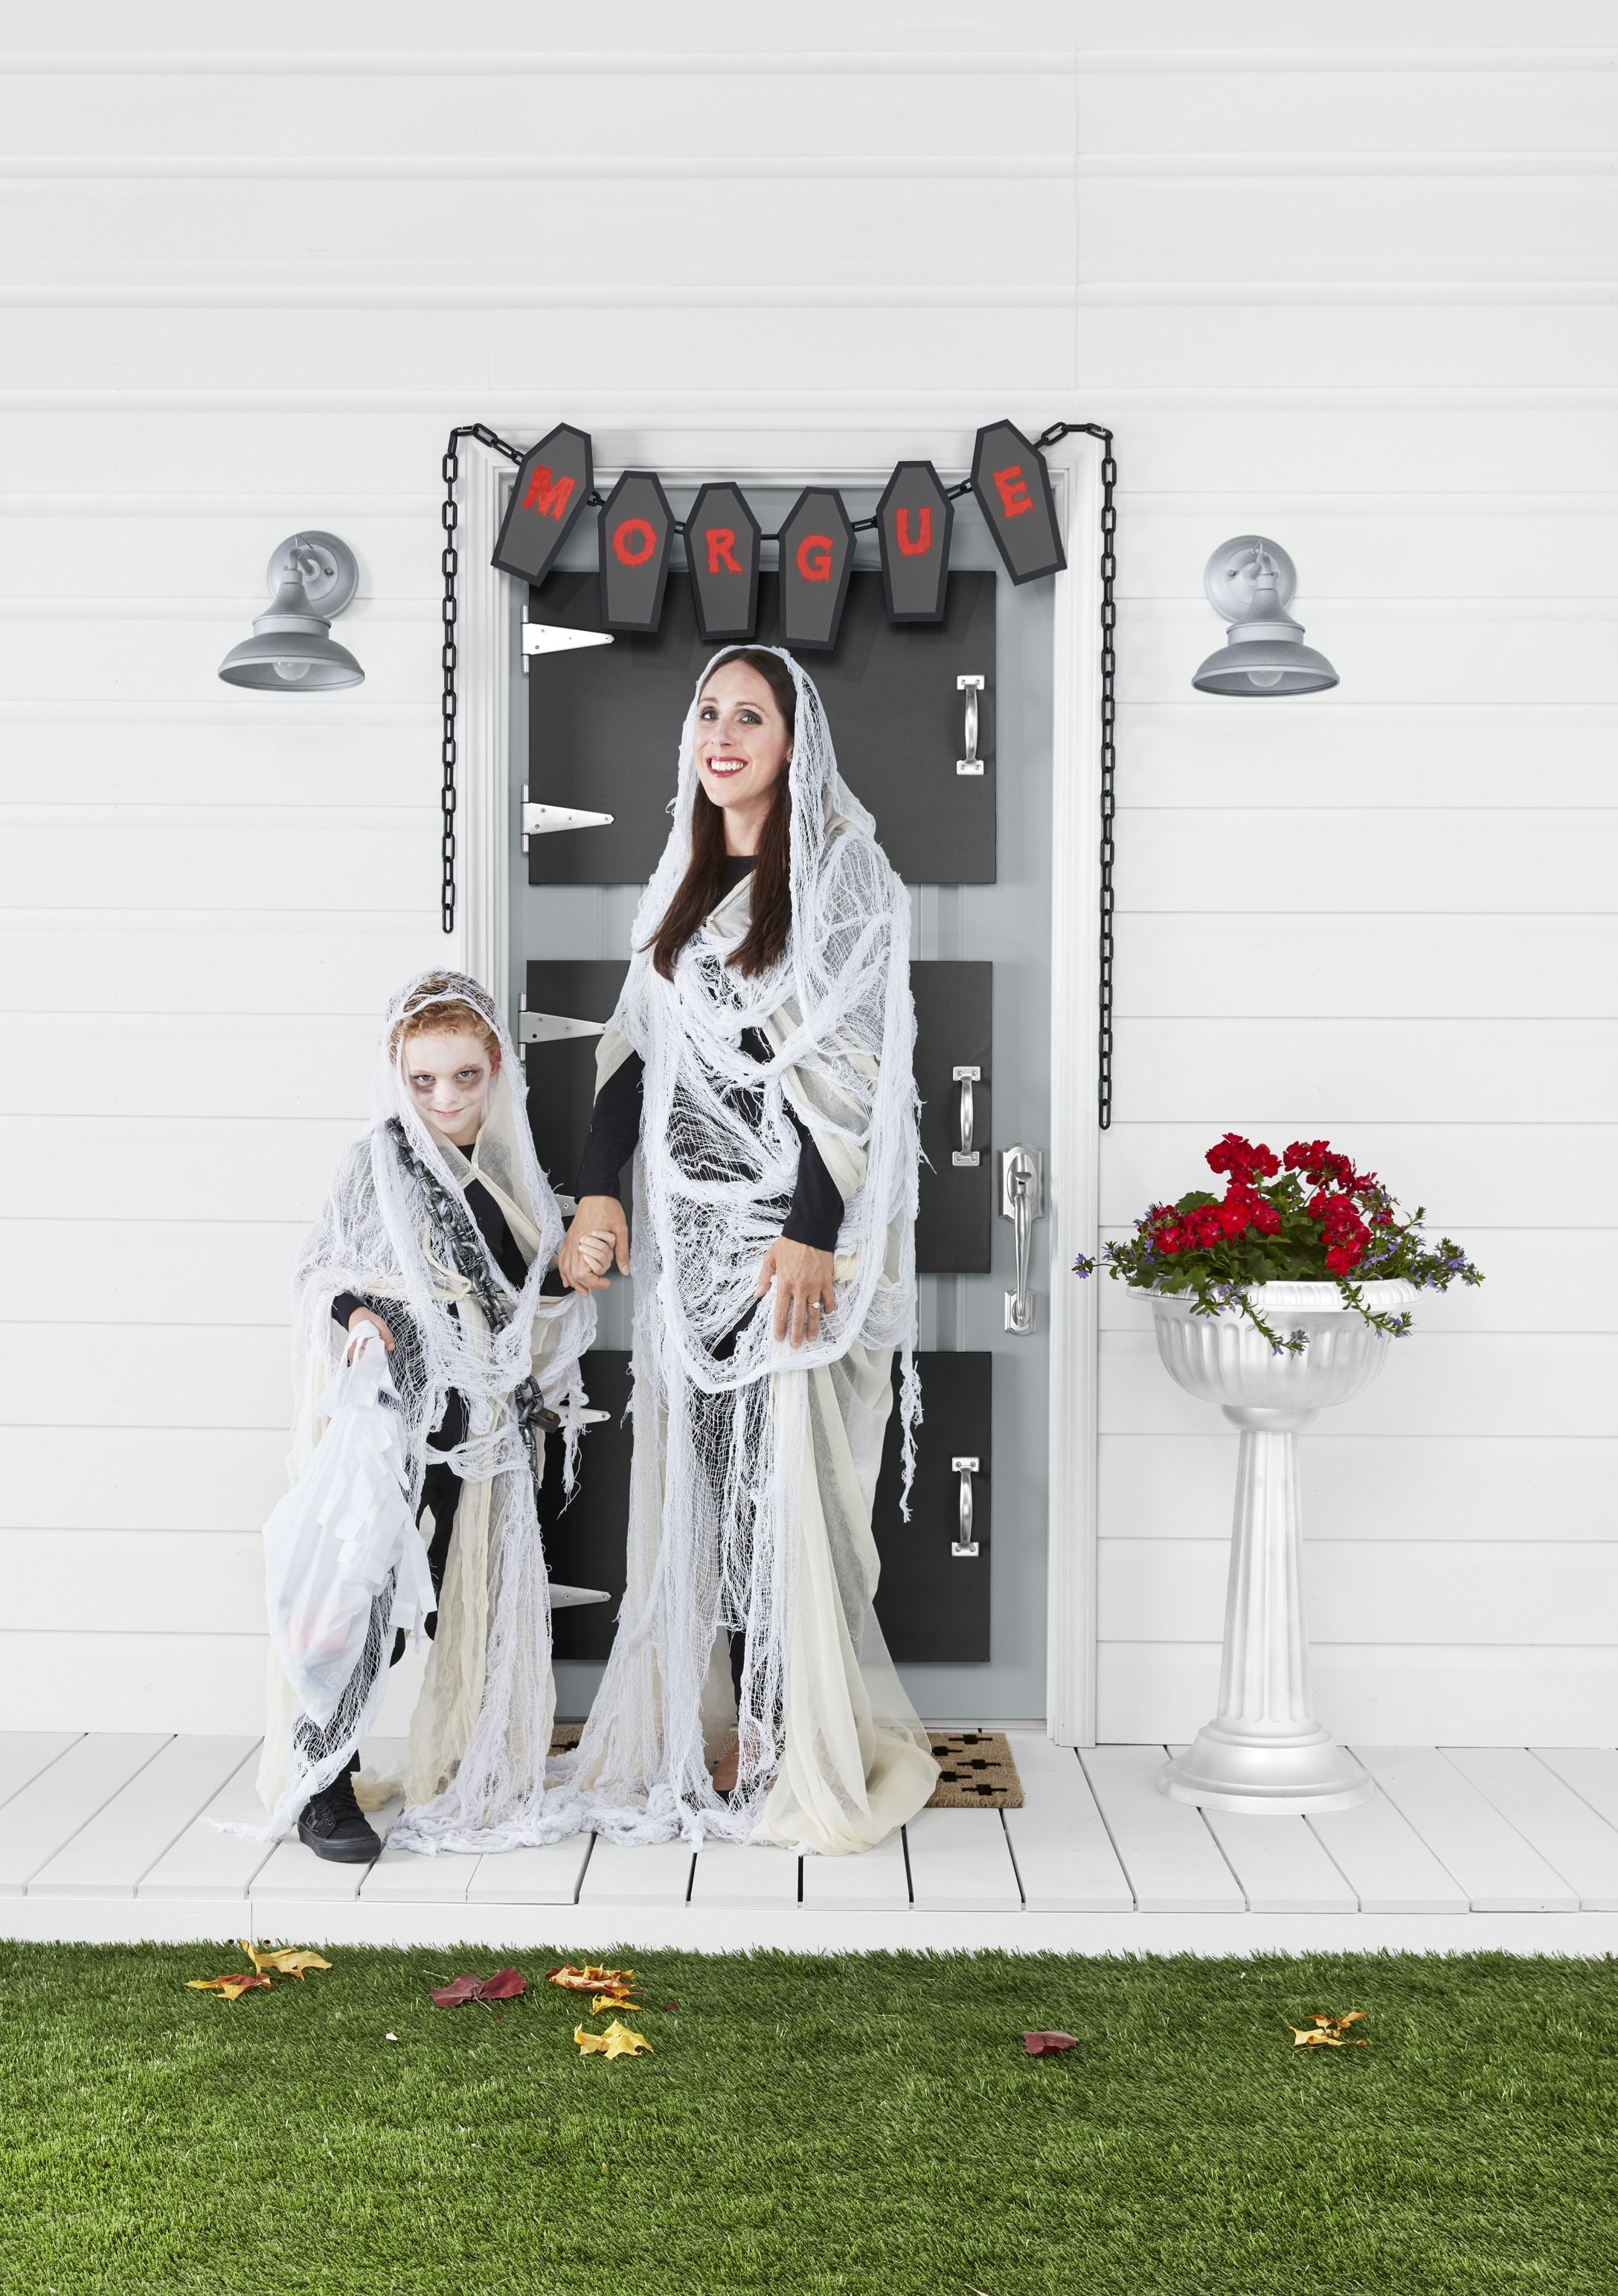 Ghost Of Christmas Present Costume Ideas.25 Best Family Halloween Costume Ideas 2019 Family Of 3